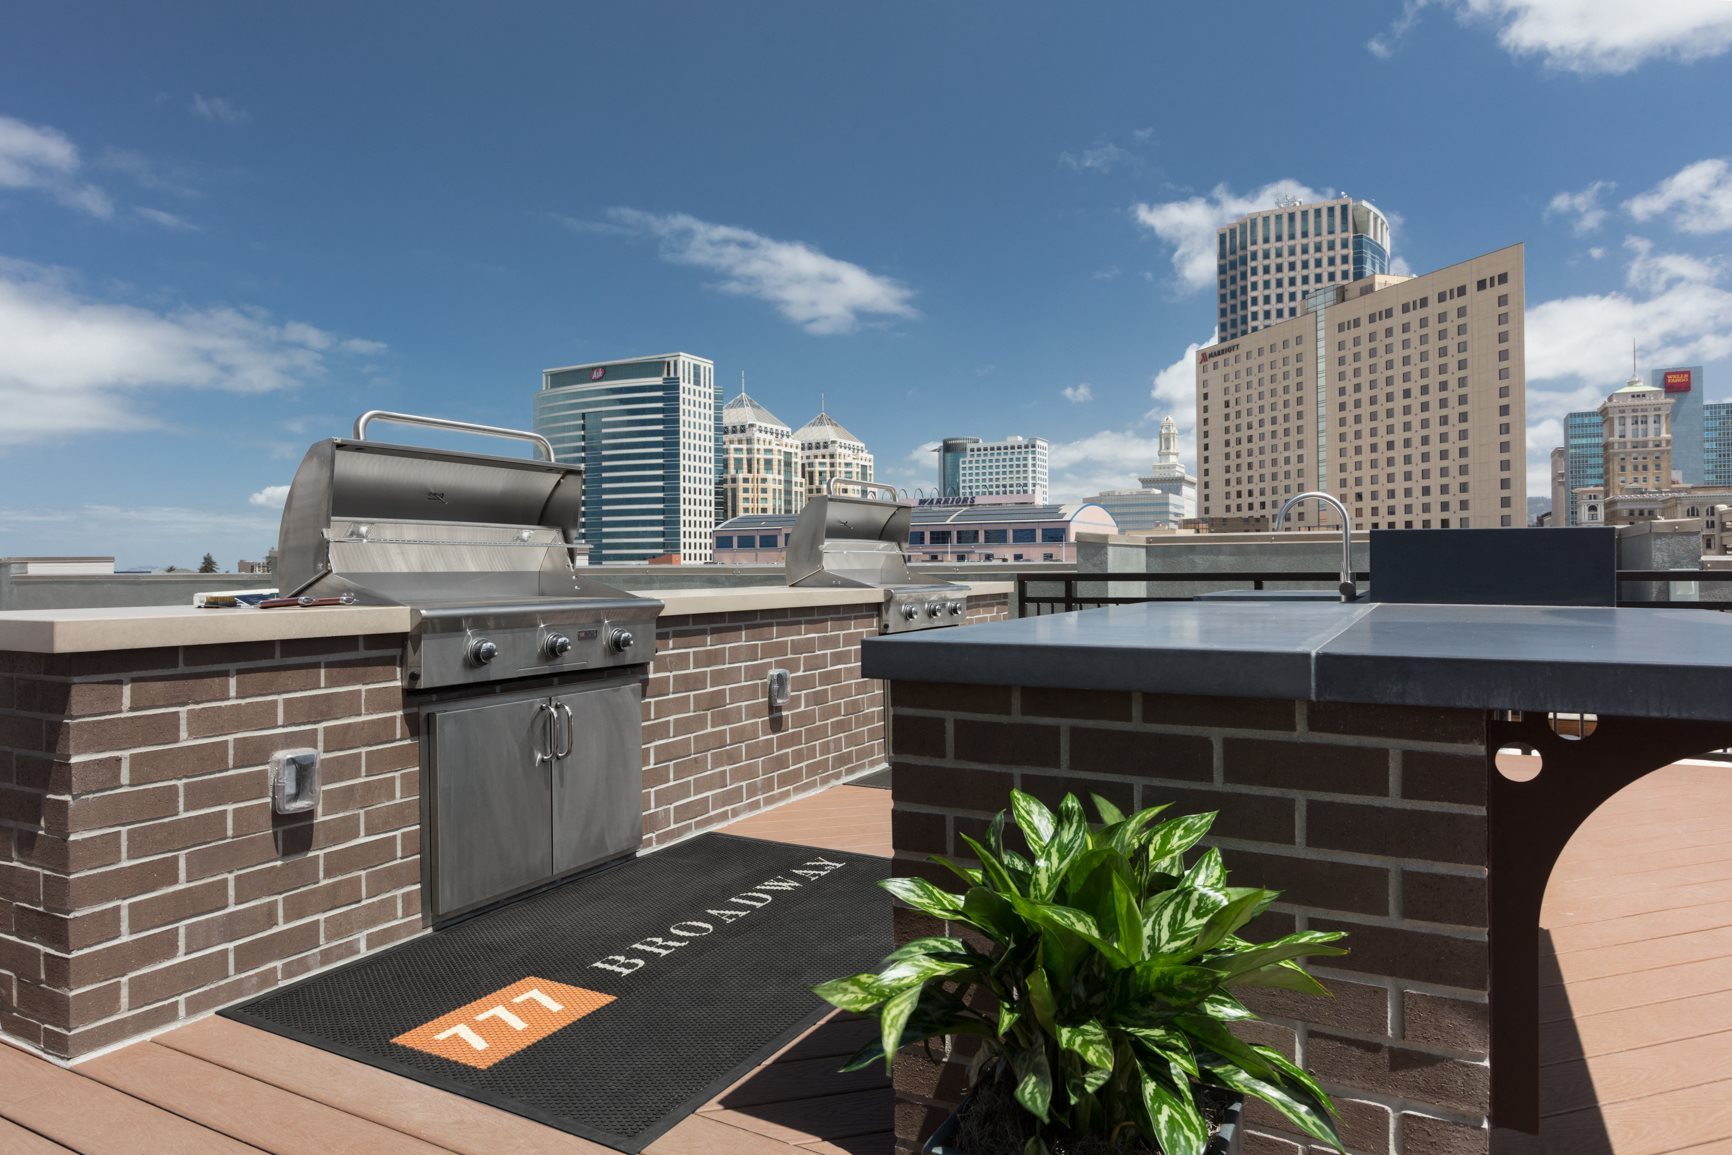 Pet-Friendly Apartments in Oakland, CA for Rent - 777 Broadway Rooftop Grill